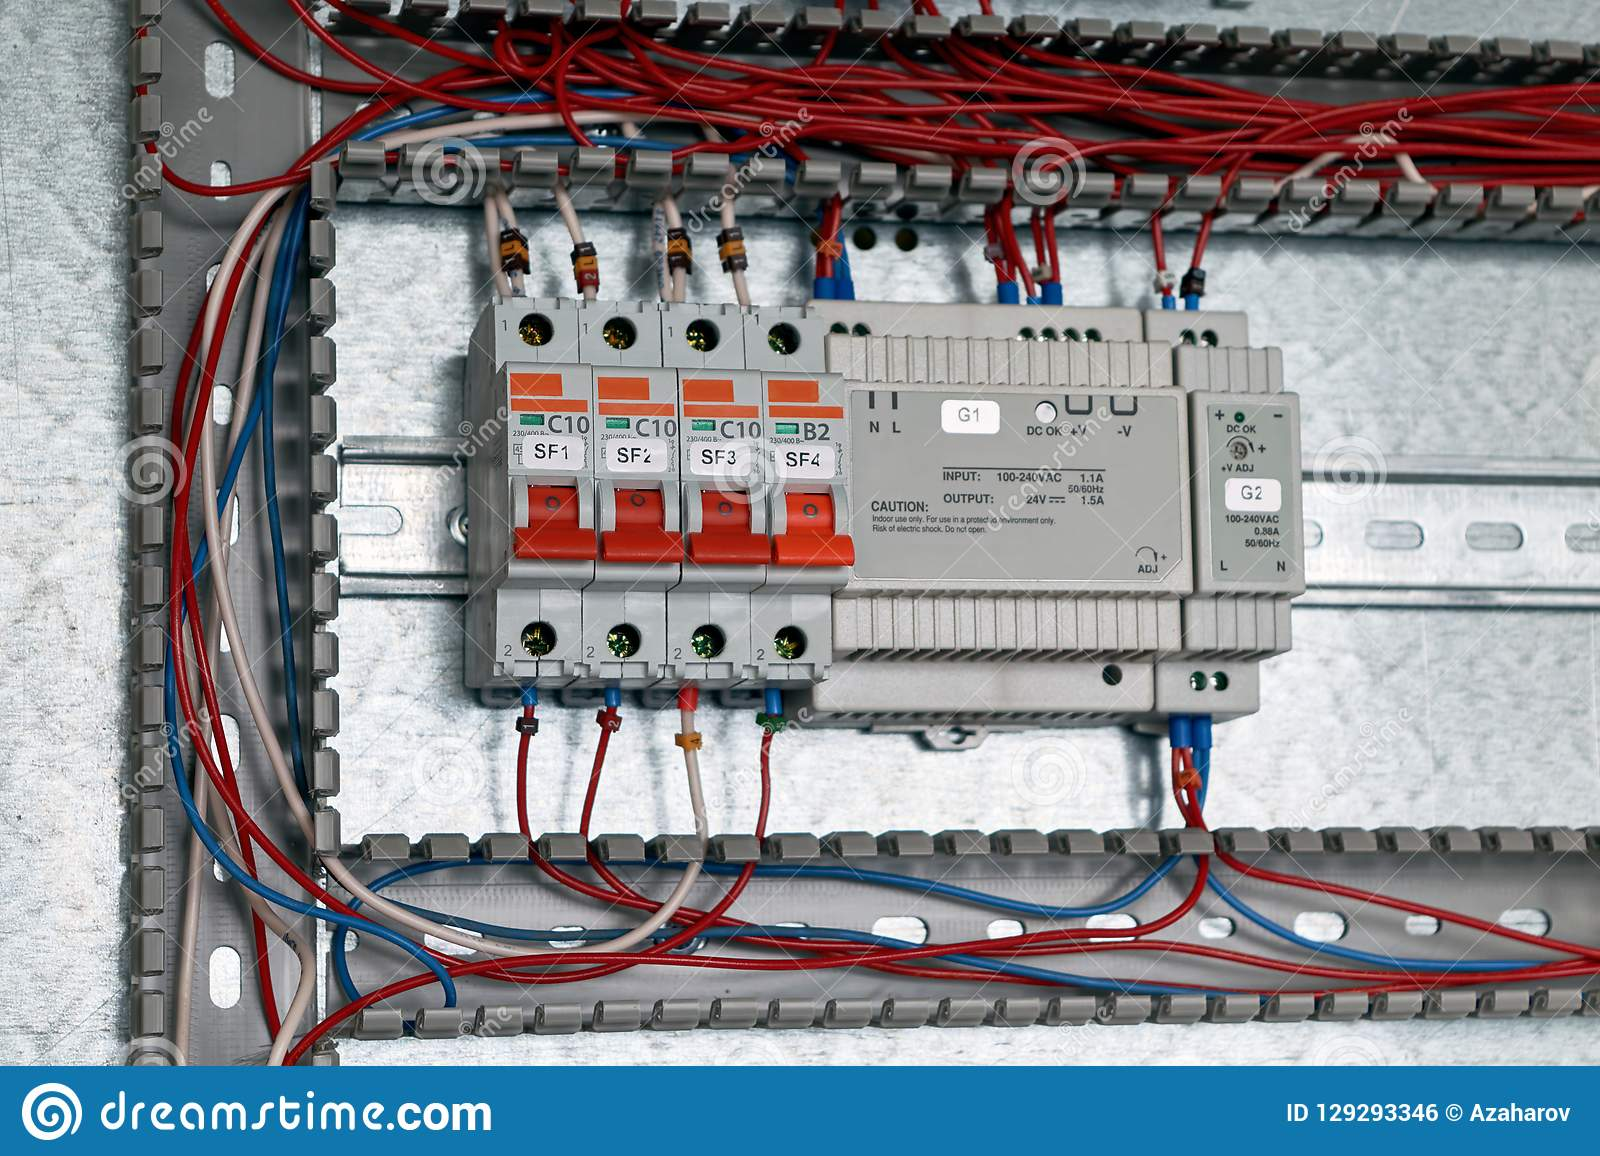 hight resolution of circuit breakers power supply with adjustment in the electrical cabinet